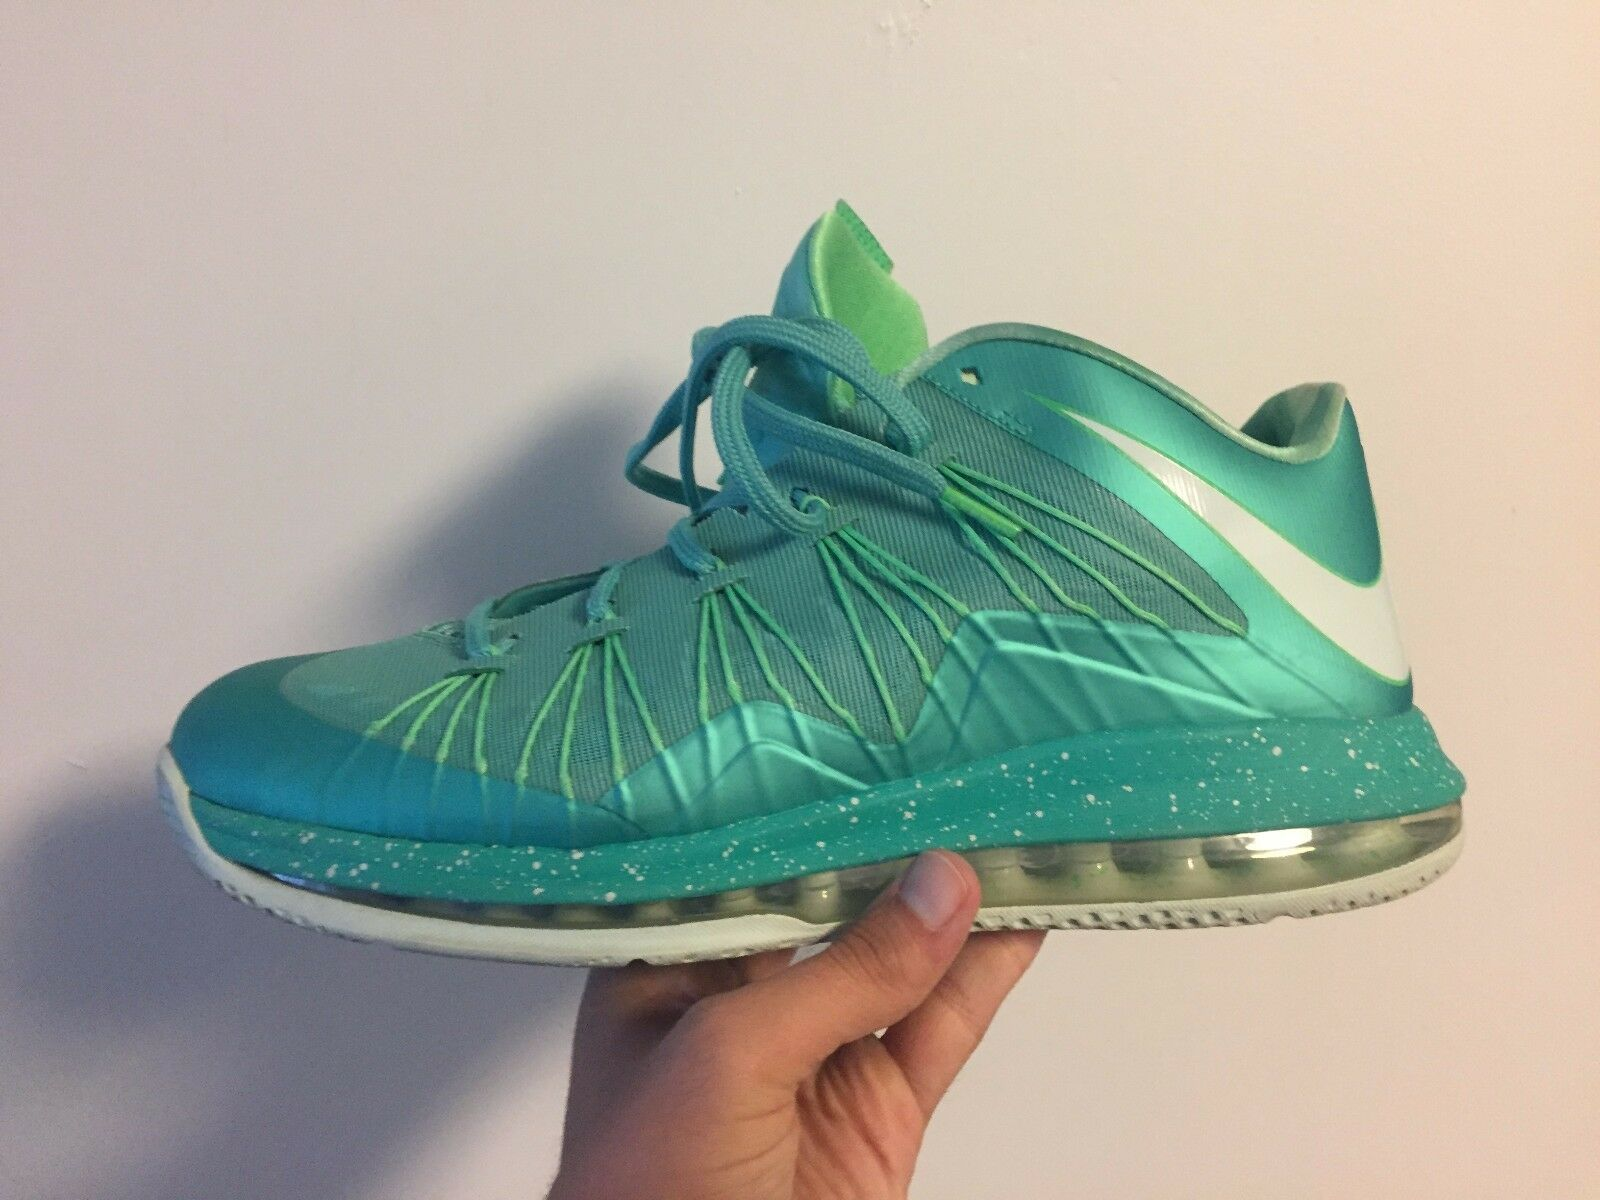 LeBron 10 Low Easter sz. 11.5. - 9/10 condition- Original box, lightly worn